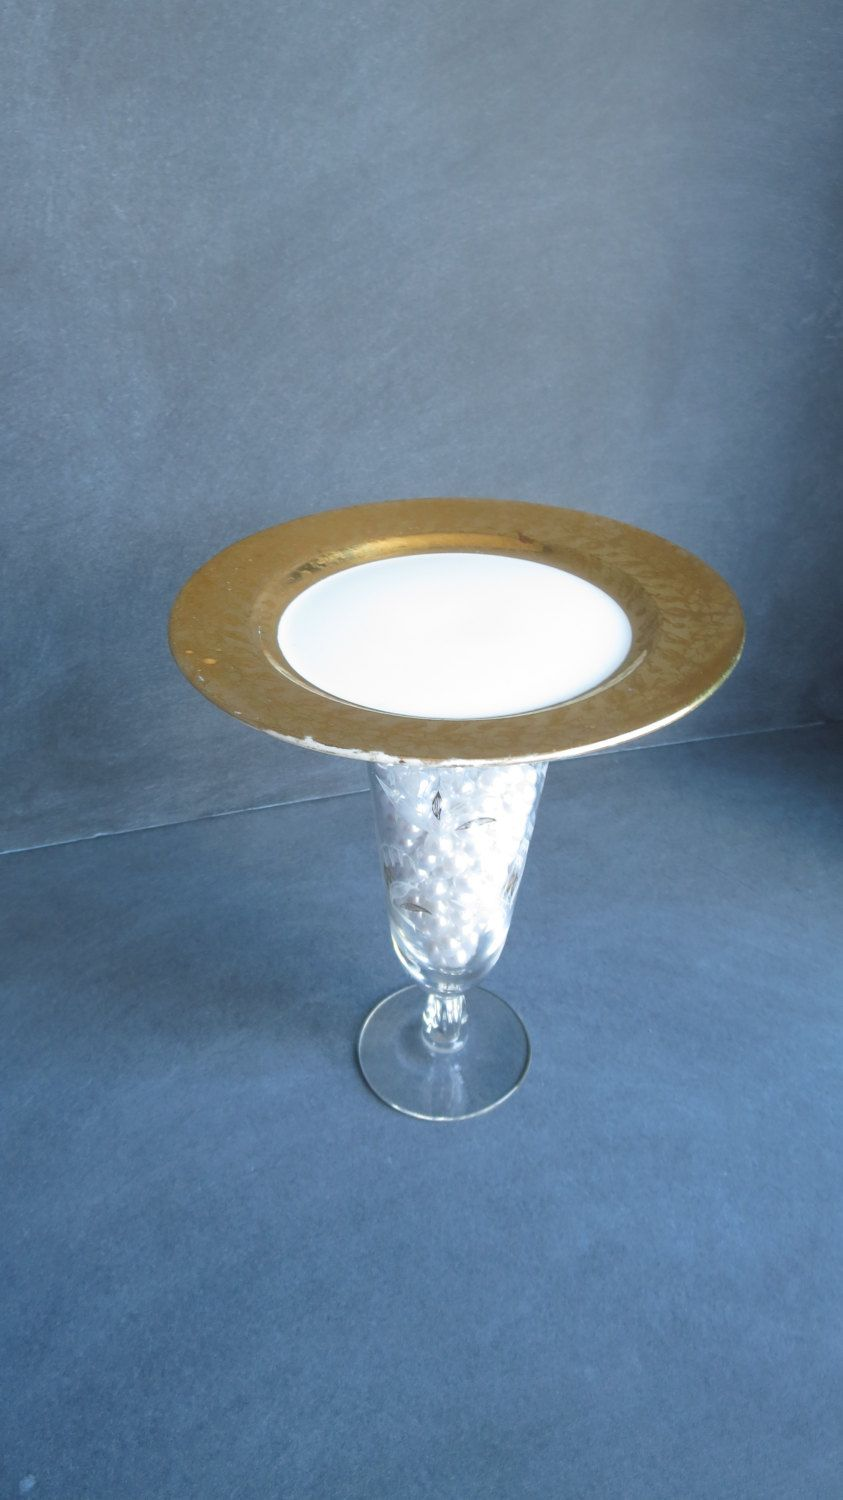 New to DancingDishAndDecor on Etsy Cupcake Stand Candle Holder | Vintage Gold and White Plate · Large PlatesWhite ... & Inidual Cupcake Stand Candle Holder | Vintage Gold and White ...